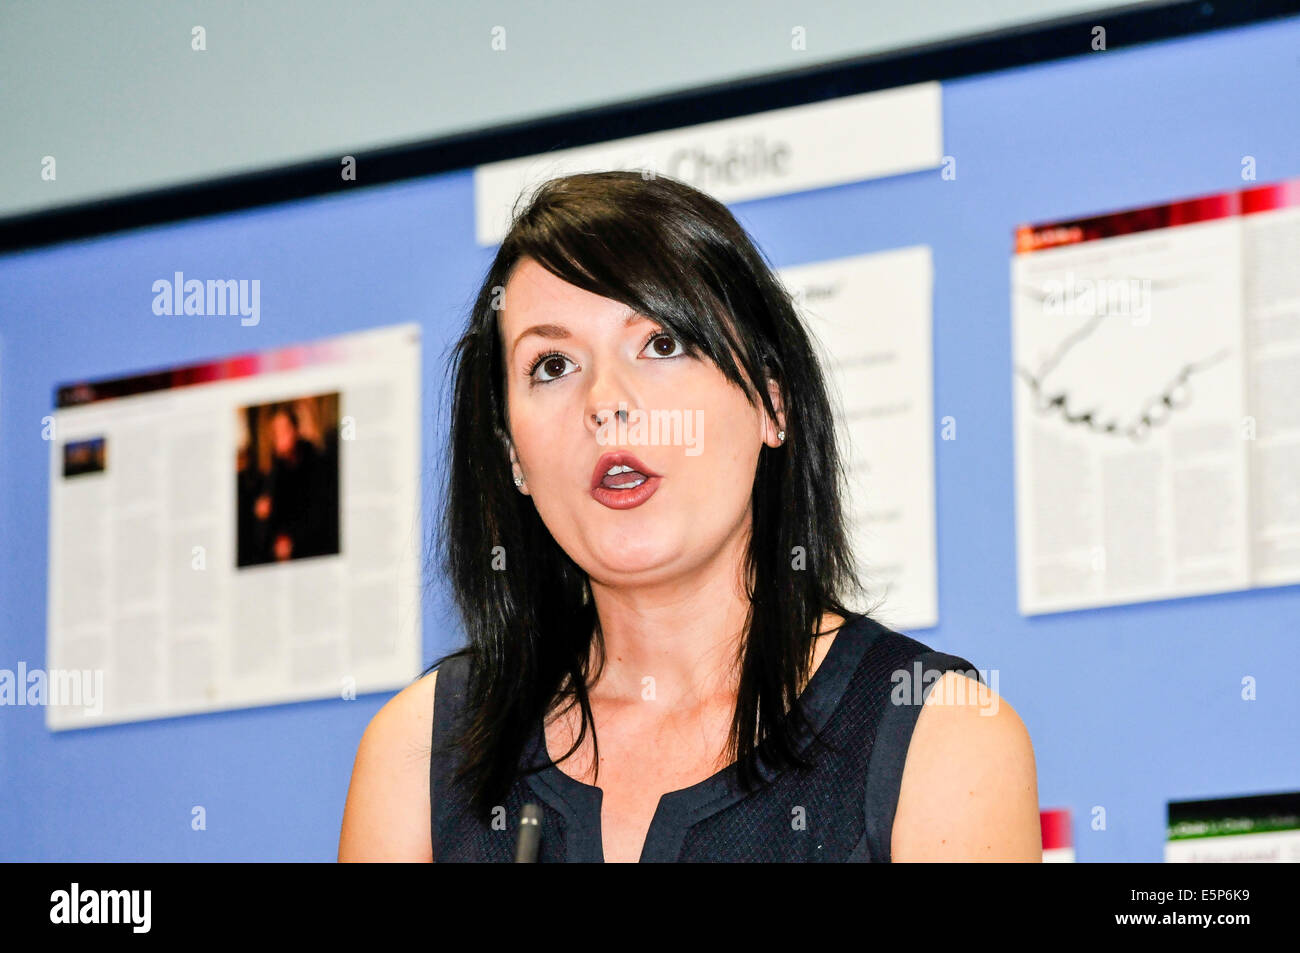 Belfast, Northern Ireland. 4th Aug, 2014.  Grainne Teggart from Amnesty International Credit:  Stephen Barnes/Alamy - Stock Image